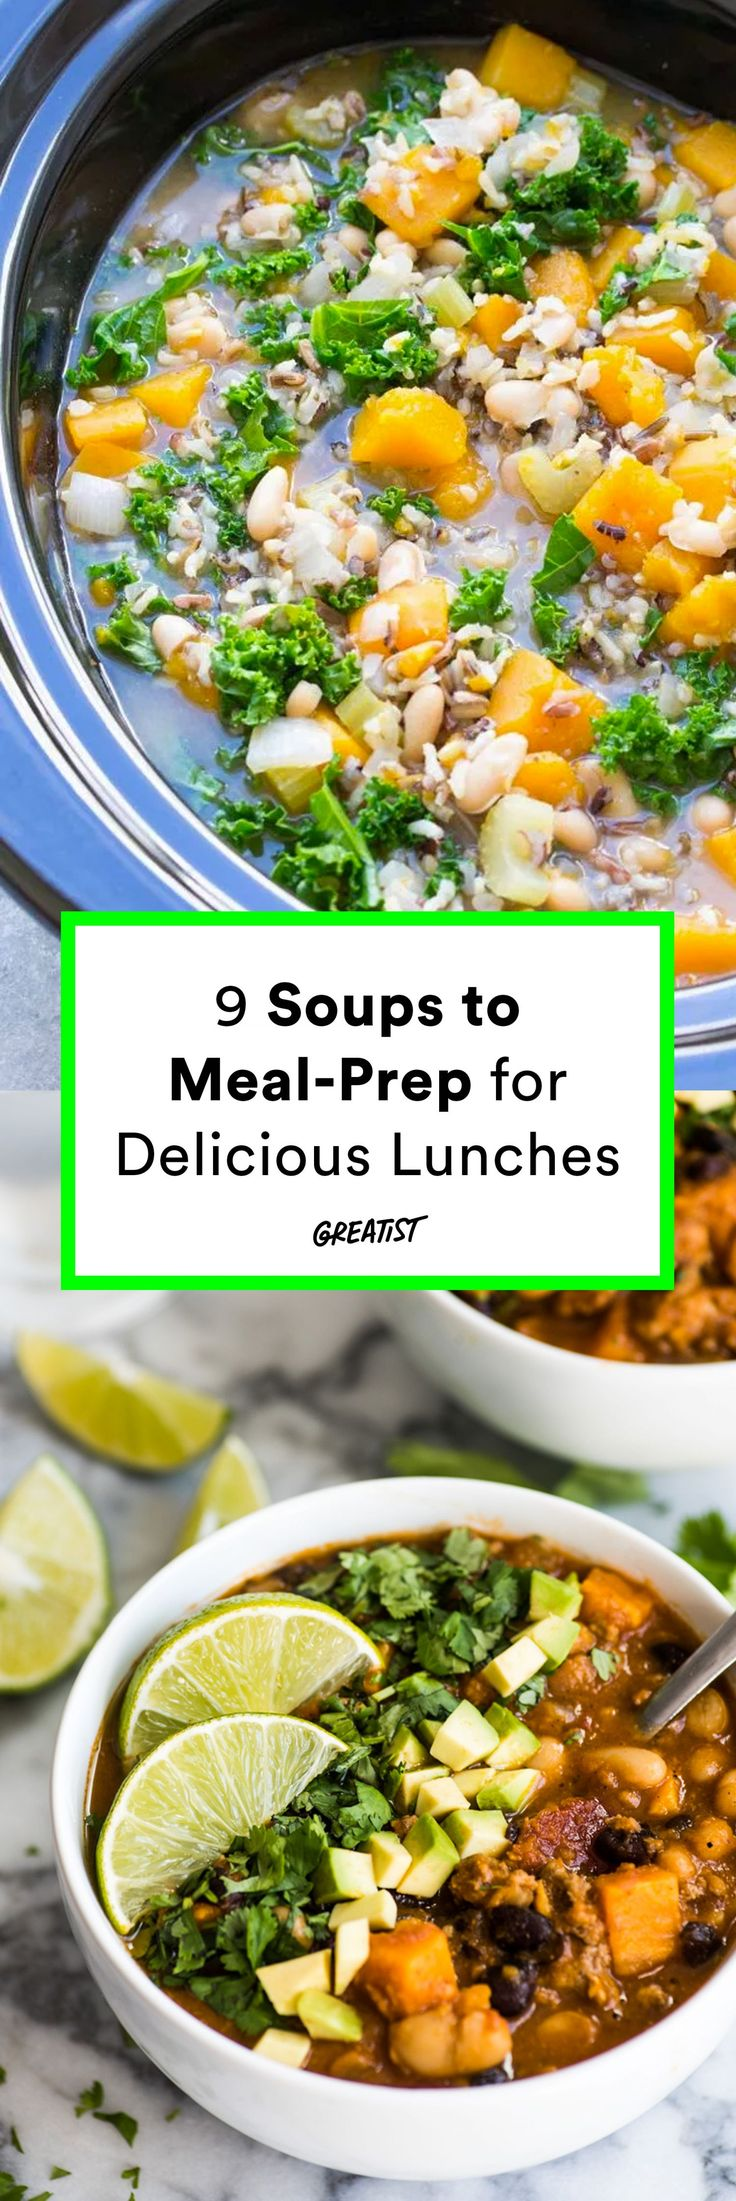 Sweater weather calls for soup and lots of leftove…